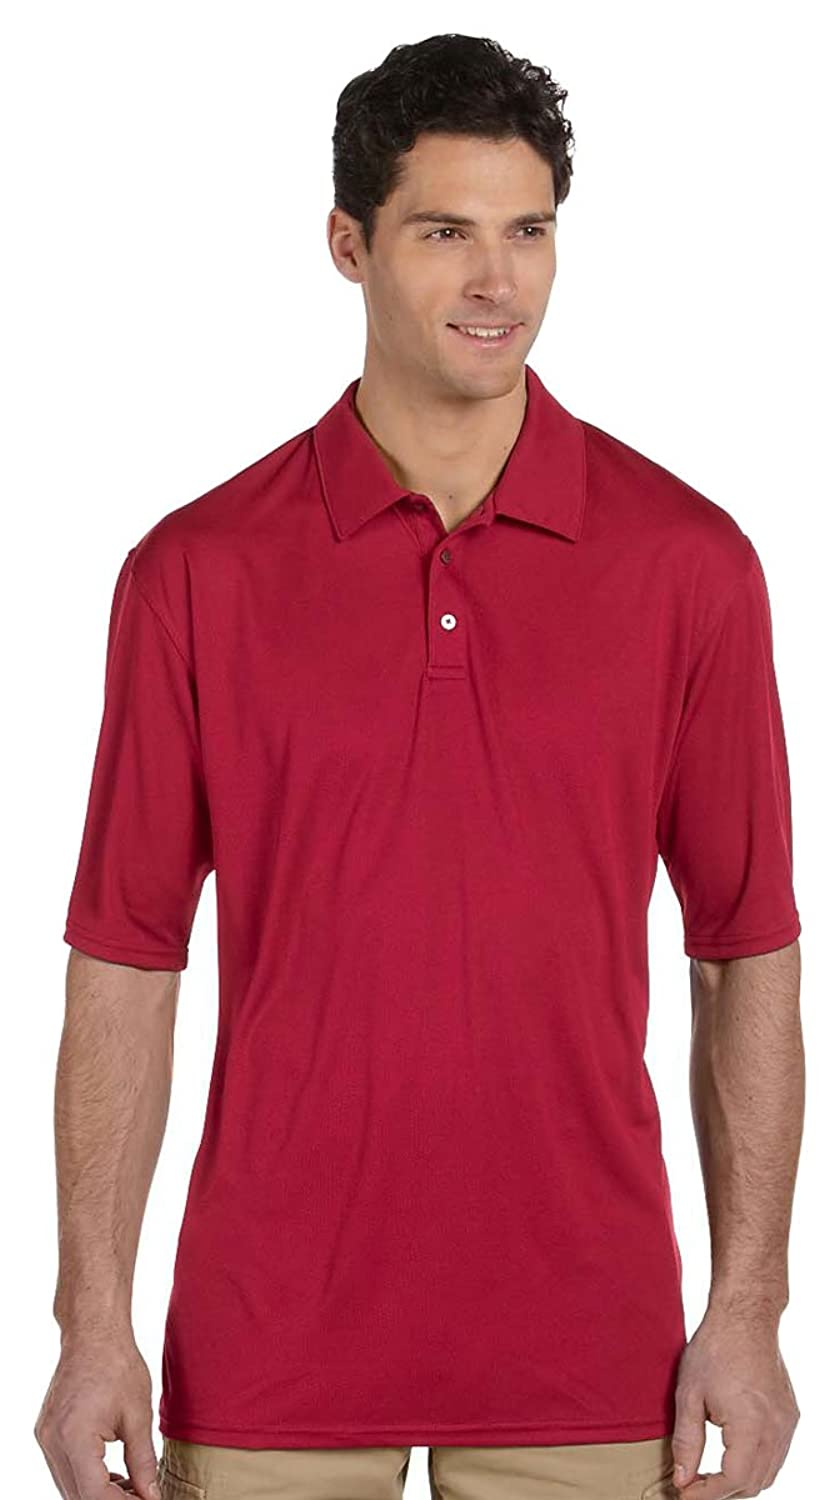 JERZEES Men's -r- SPORT Polyester Polo> True Red 441